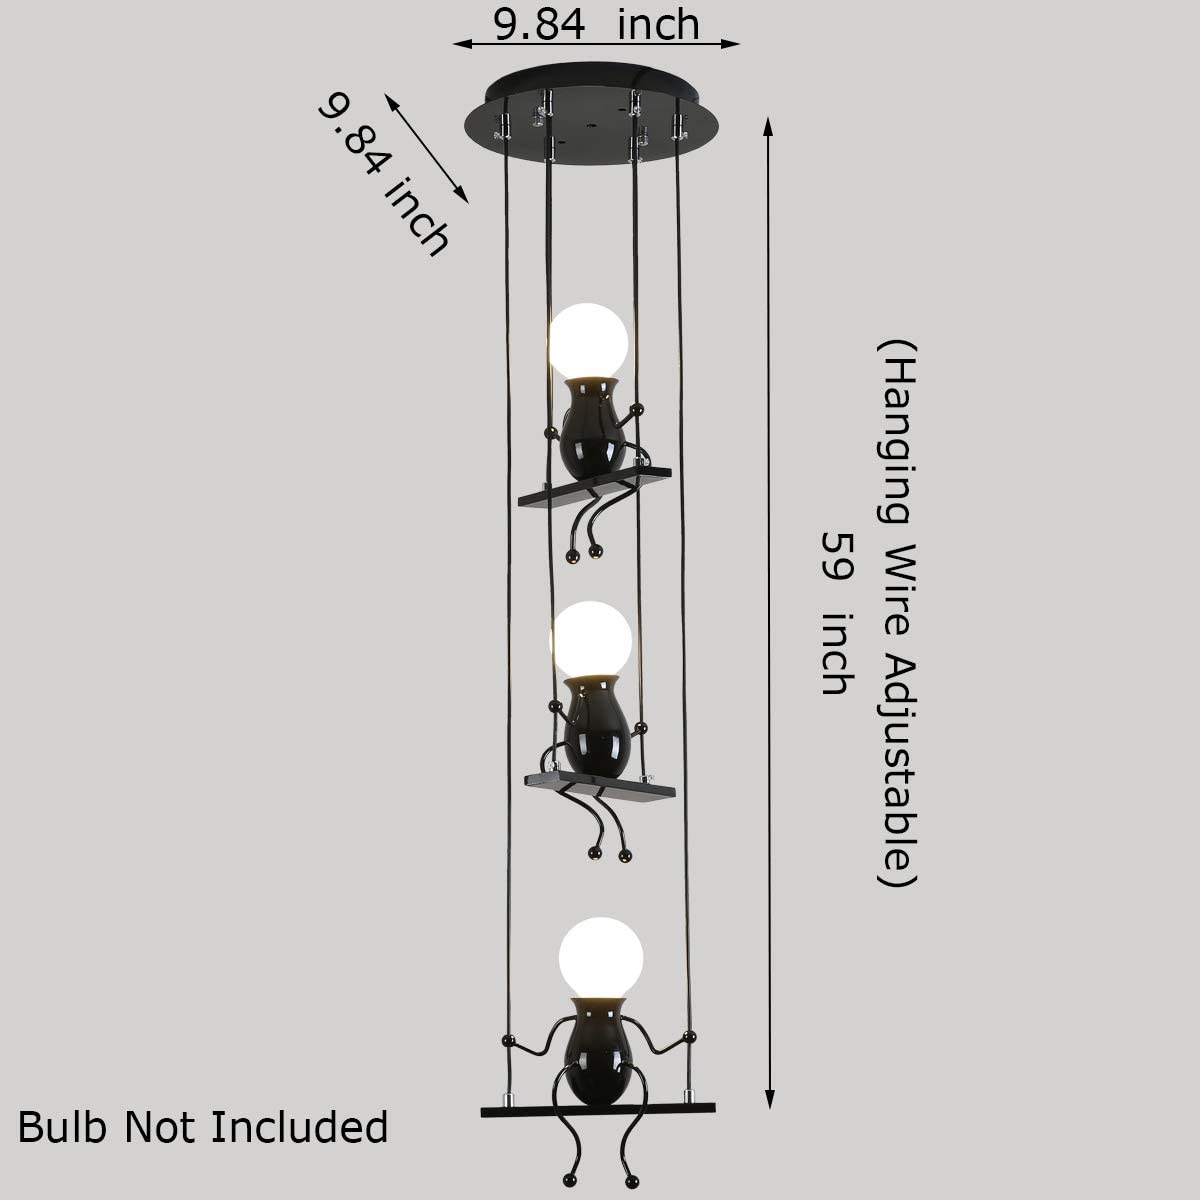 Creative LED Pendant Lighting Modern Little People Ceiling Pendant Light Fixture Adjustable Hanging Lights for Bedroom Decoration Iron Cartoon Doll Chandeliers Dining Rooms 3 E26 Baking Paint